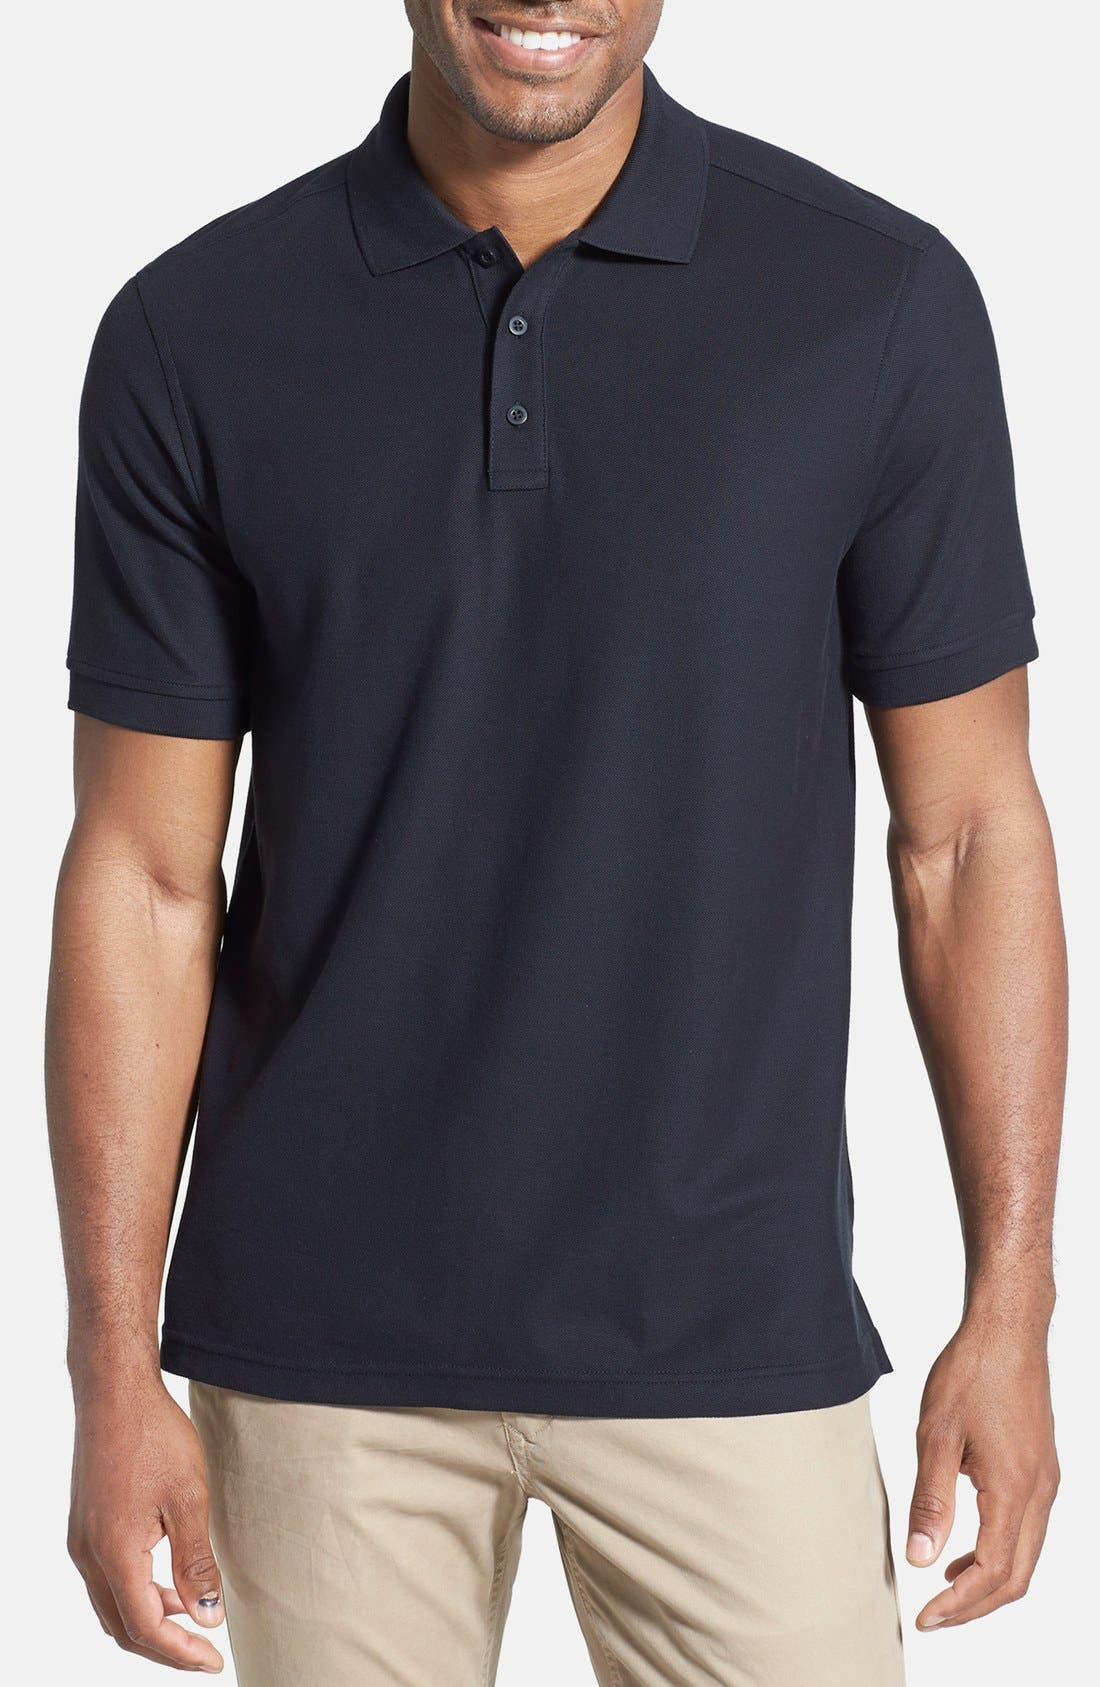 Nordstrom Men's Shop 'Classic' Regular Fit Piqué Polo